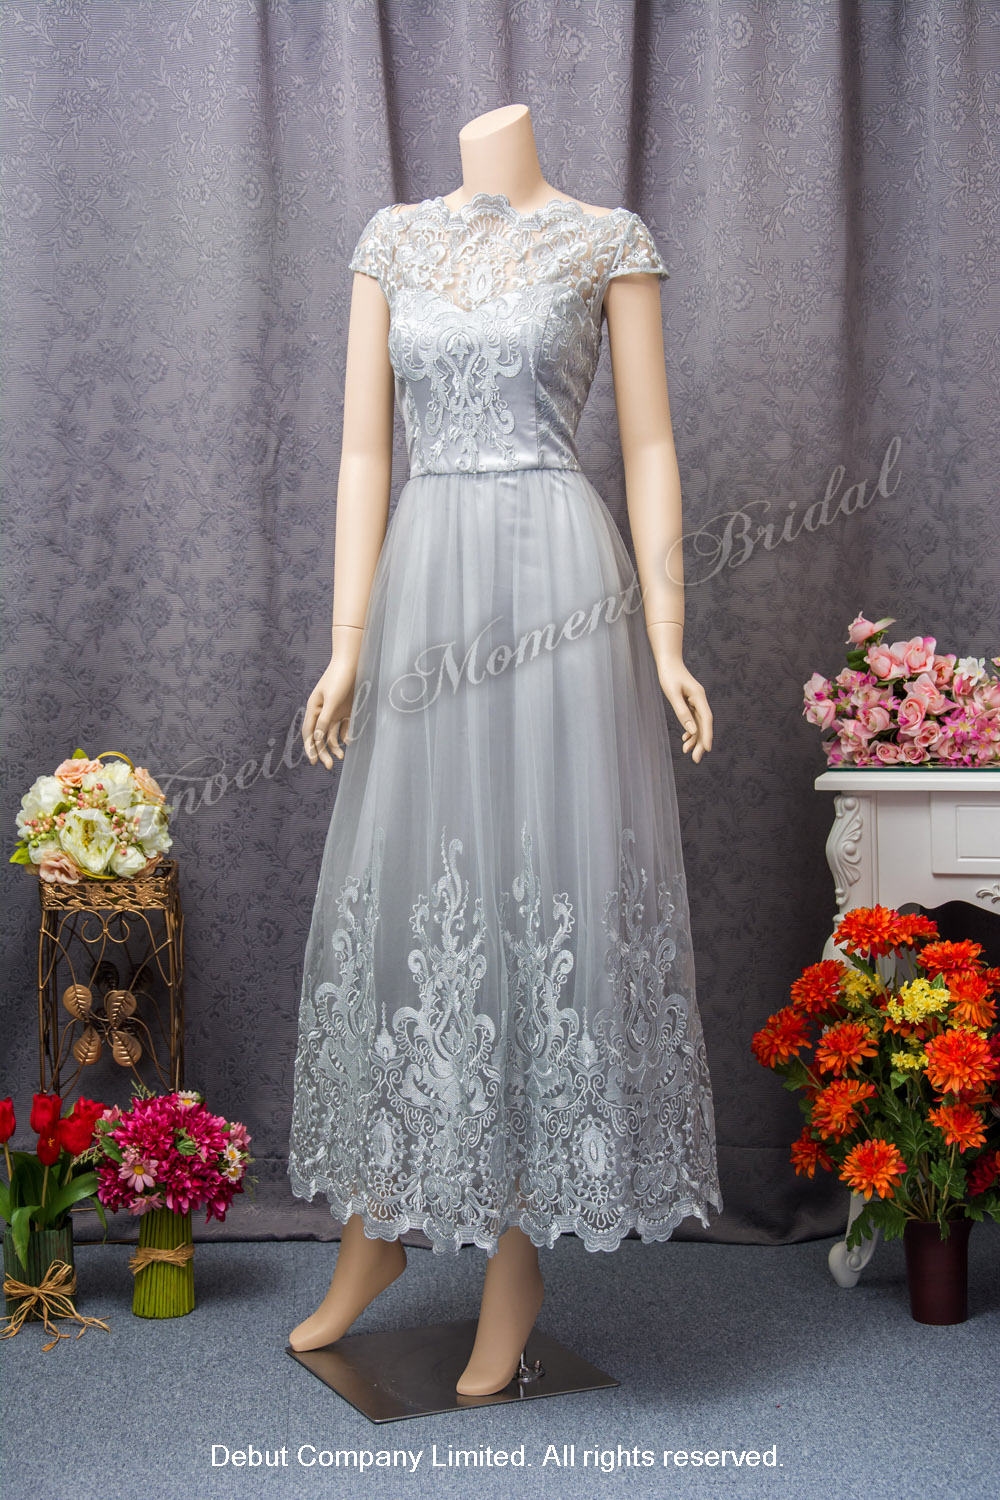 Short sleeves, boat neckline, floor length Party Dress with lace appliques. Colour: Silver. 短袖銀色蕾絲宴會晩裝裙